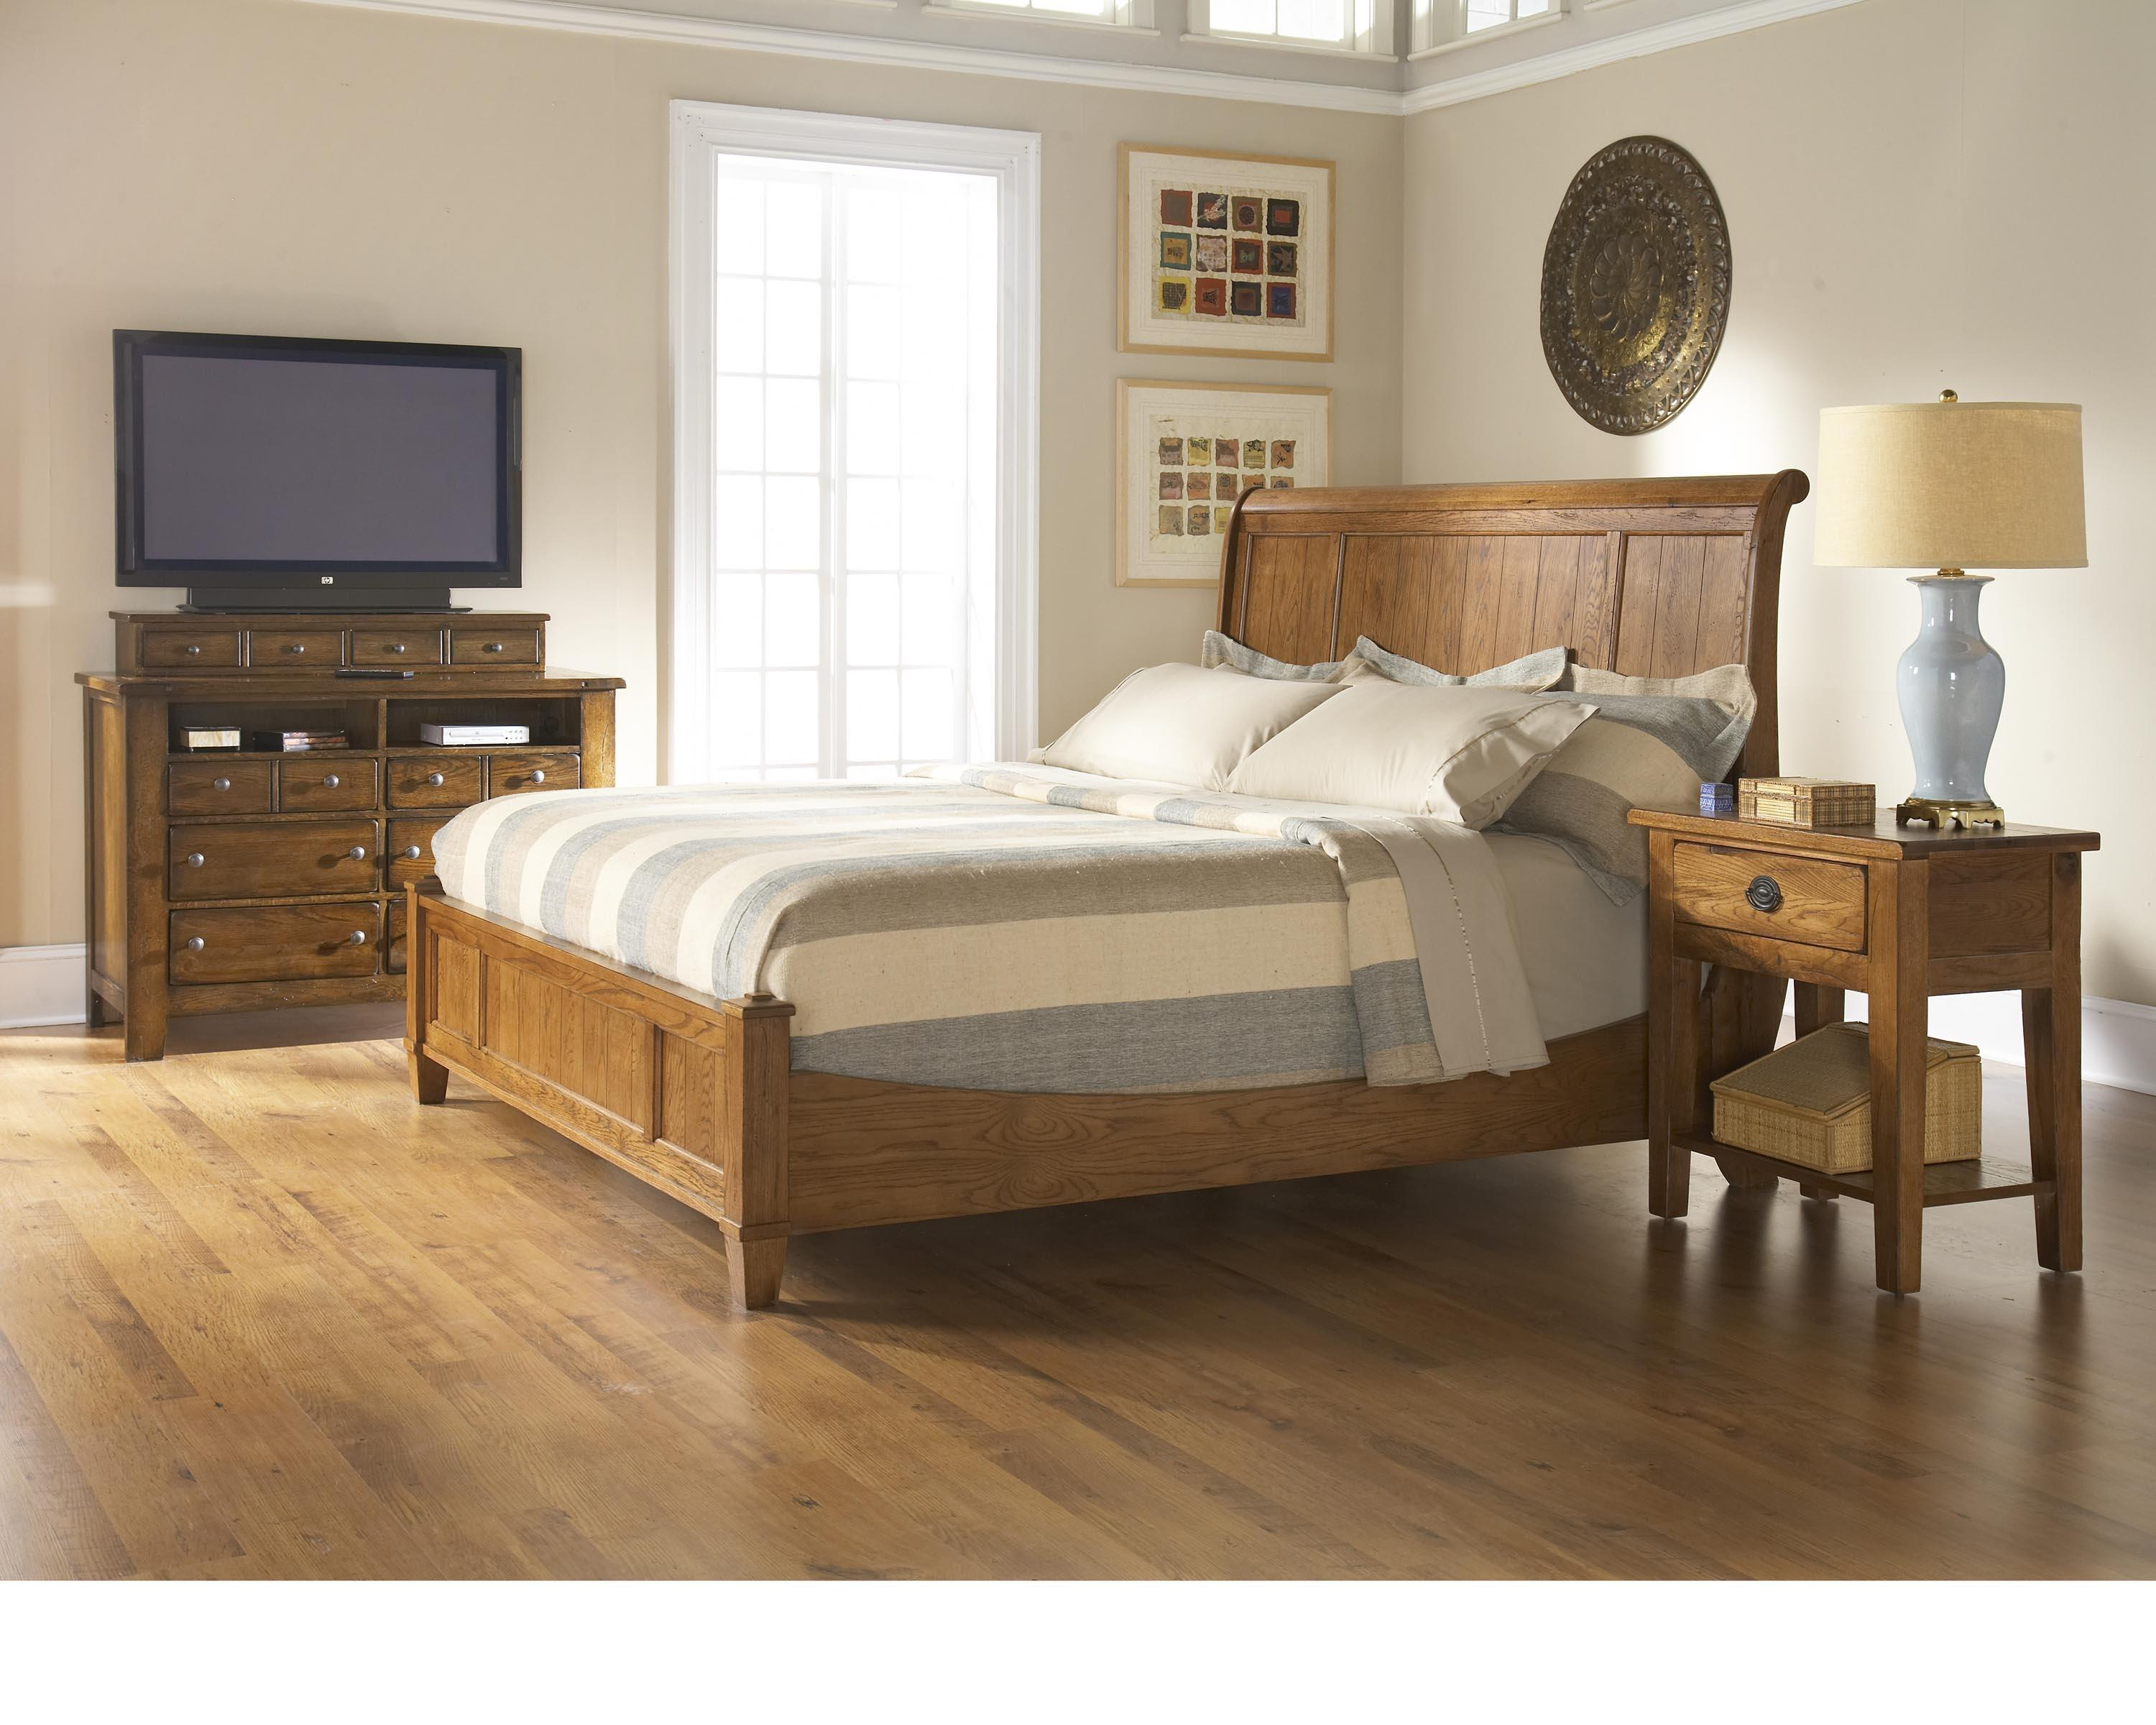 Broyhill At Value City Furniture New Jersey Nj And Staten Island Nyc Broyhill Furniture Store